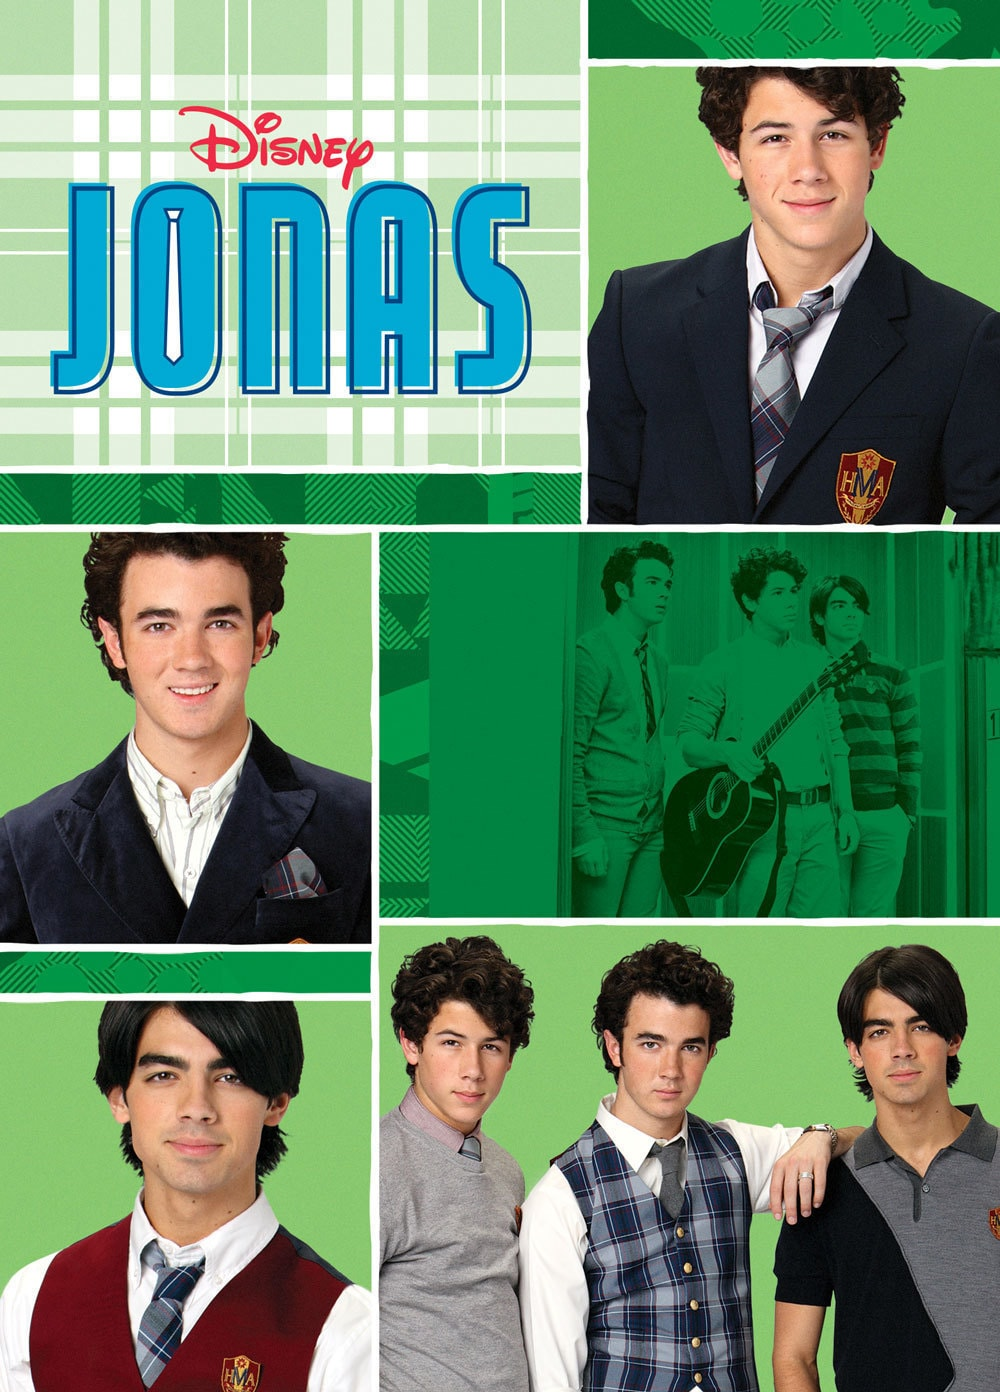 JONAS Products